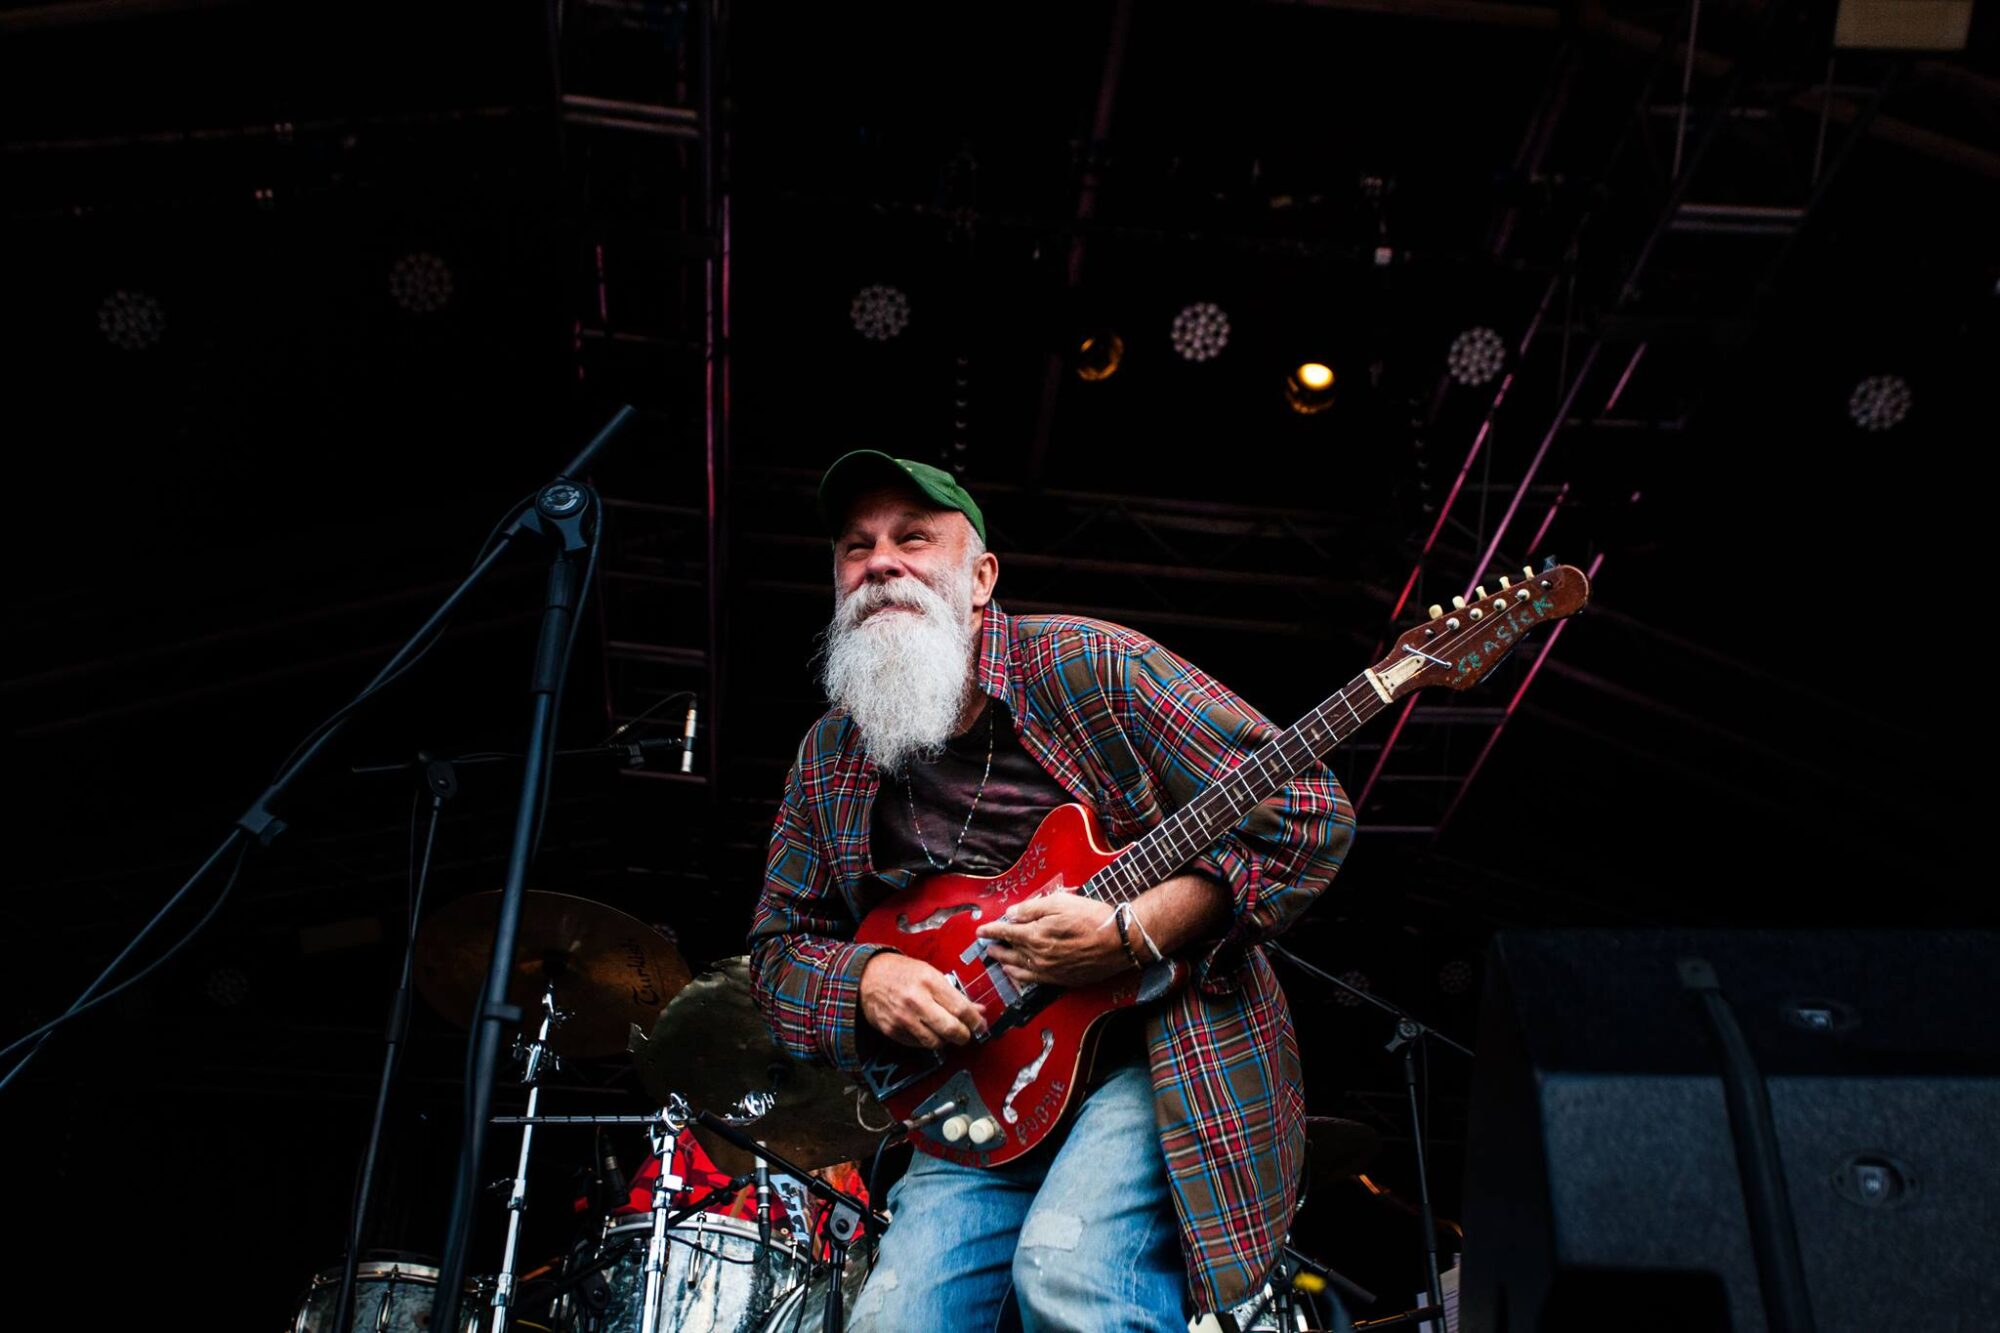 Seaskick Steve photo © Alex R Elms Photography